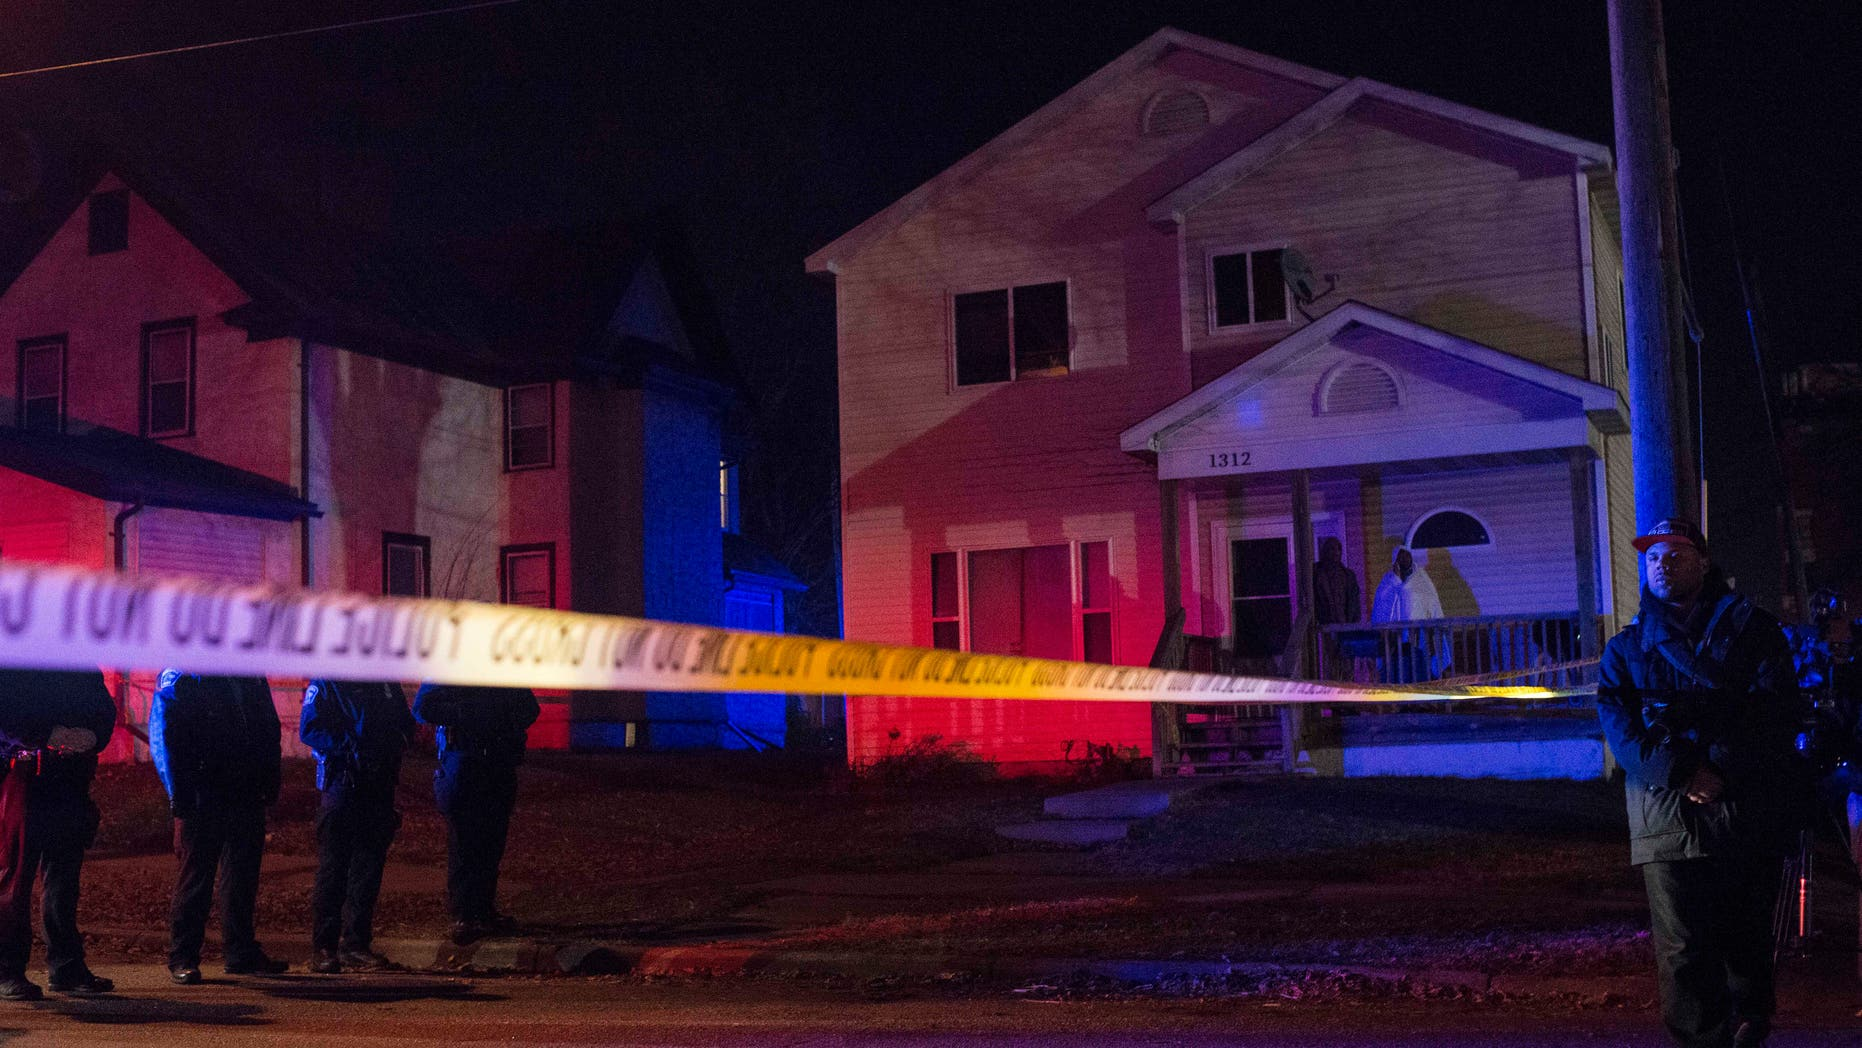 MINNEAPOLIS, MN - NOVEMBER 24: Police line up in front of a crime scene, and two people look on from their porch after 5 people were shot at a Black Lives Matters protest November 24, 2015 in Minneapolis, Minnesota. According to reports, a group of white men allegedly opened fire on the crowd after being escorted away from the encampment. (Photo by Stephen Maturen/Getty Images)